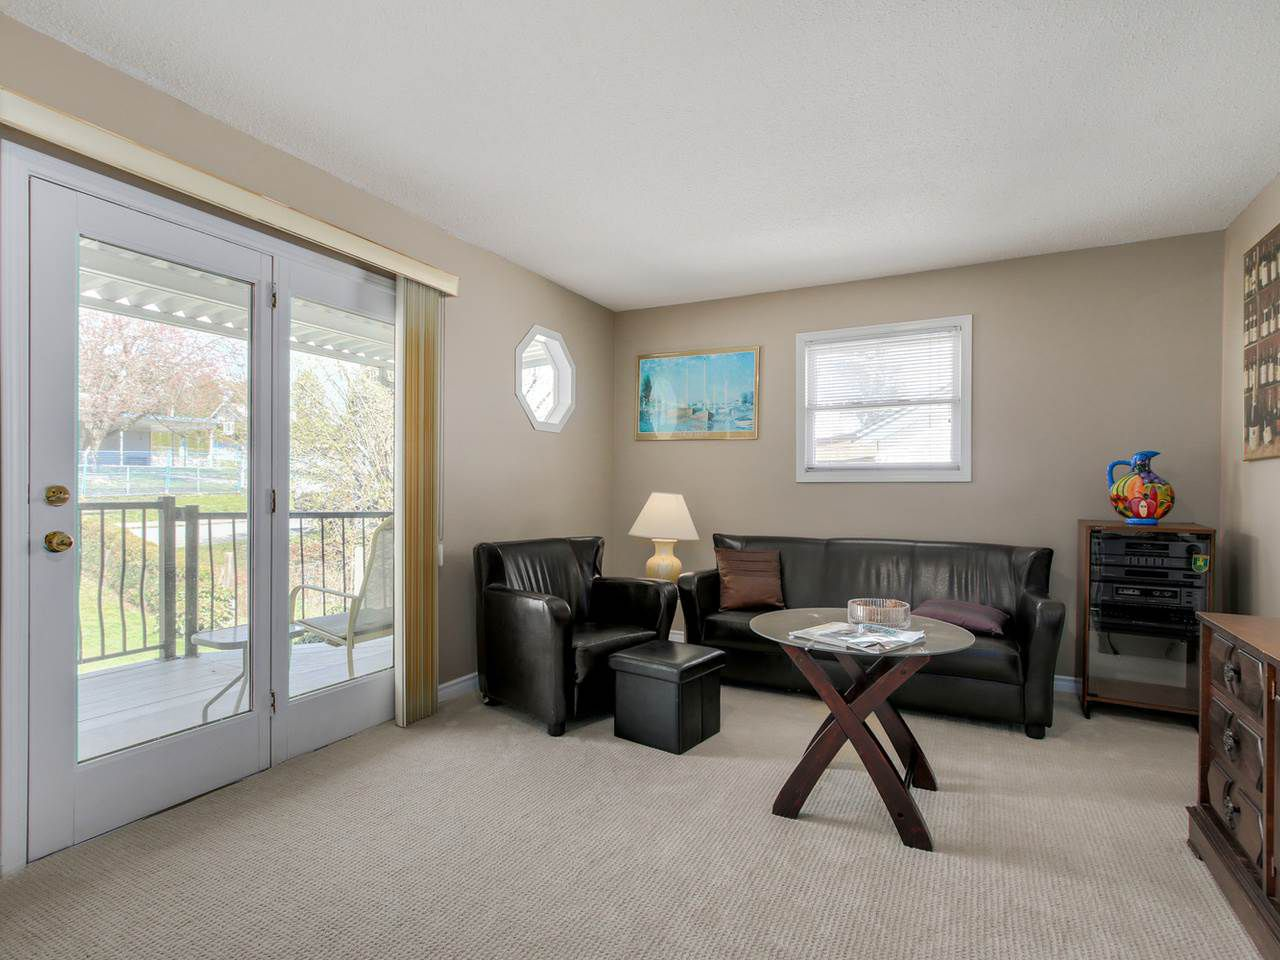 Photo 11: Photos: 449 E 5TH Street in North Vancouver: Lower Lonsdale House for sale : MLS®# R2056647